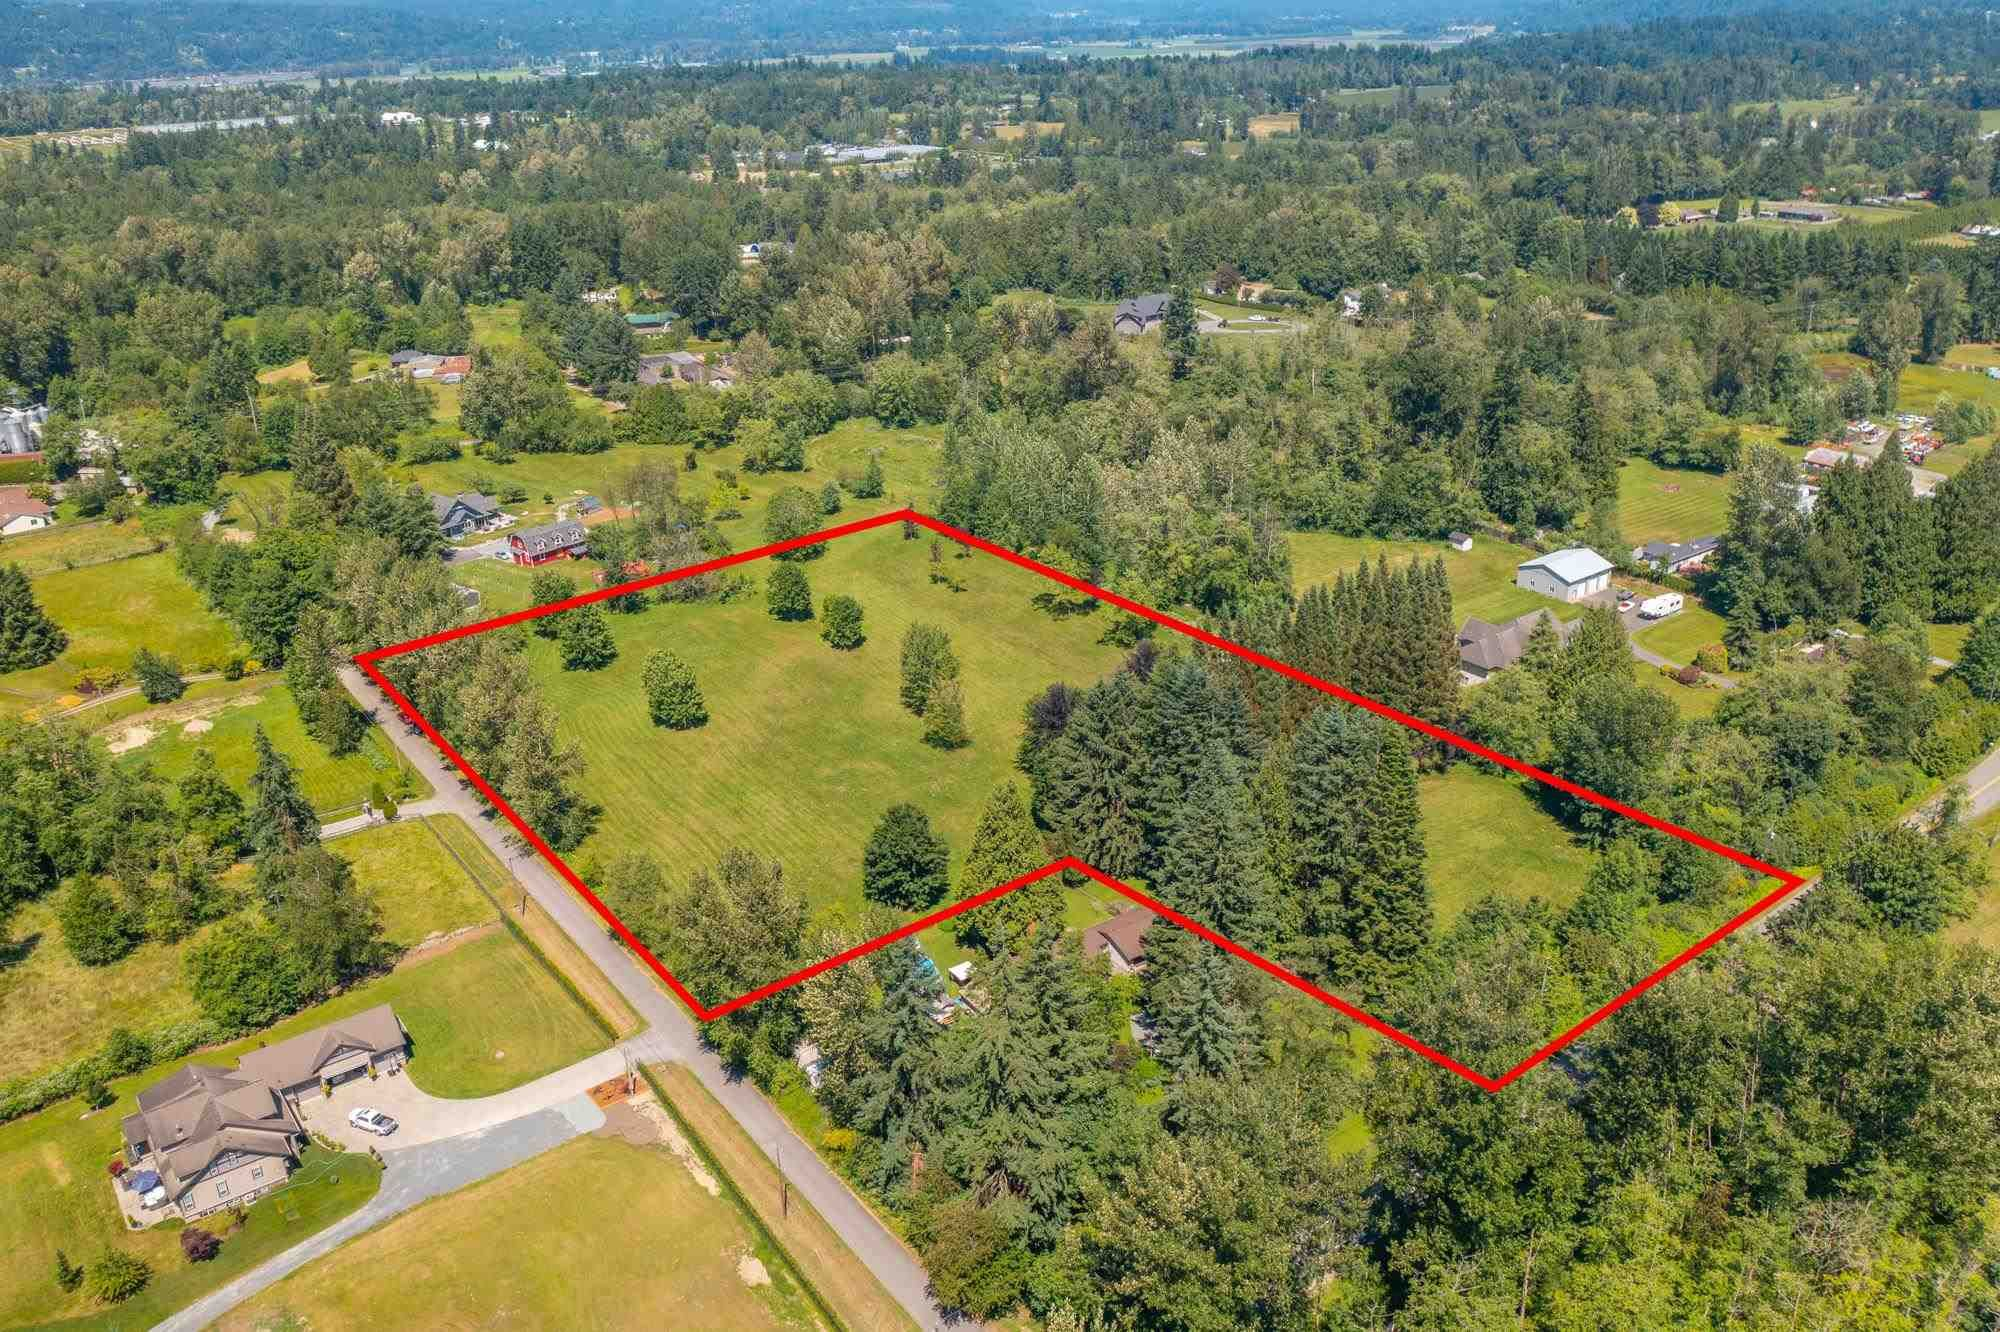 Main Photo: LT.2 260 STREET in Langley: County Line Glen Valley Land for sale : MLS®# R2596487